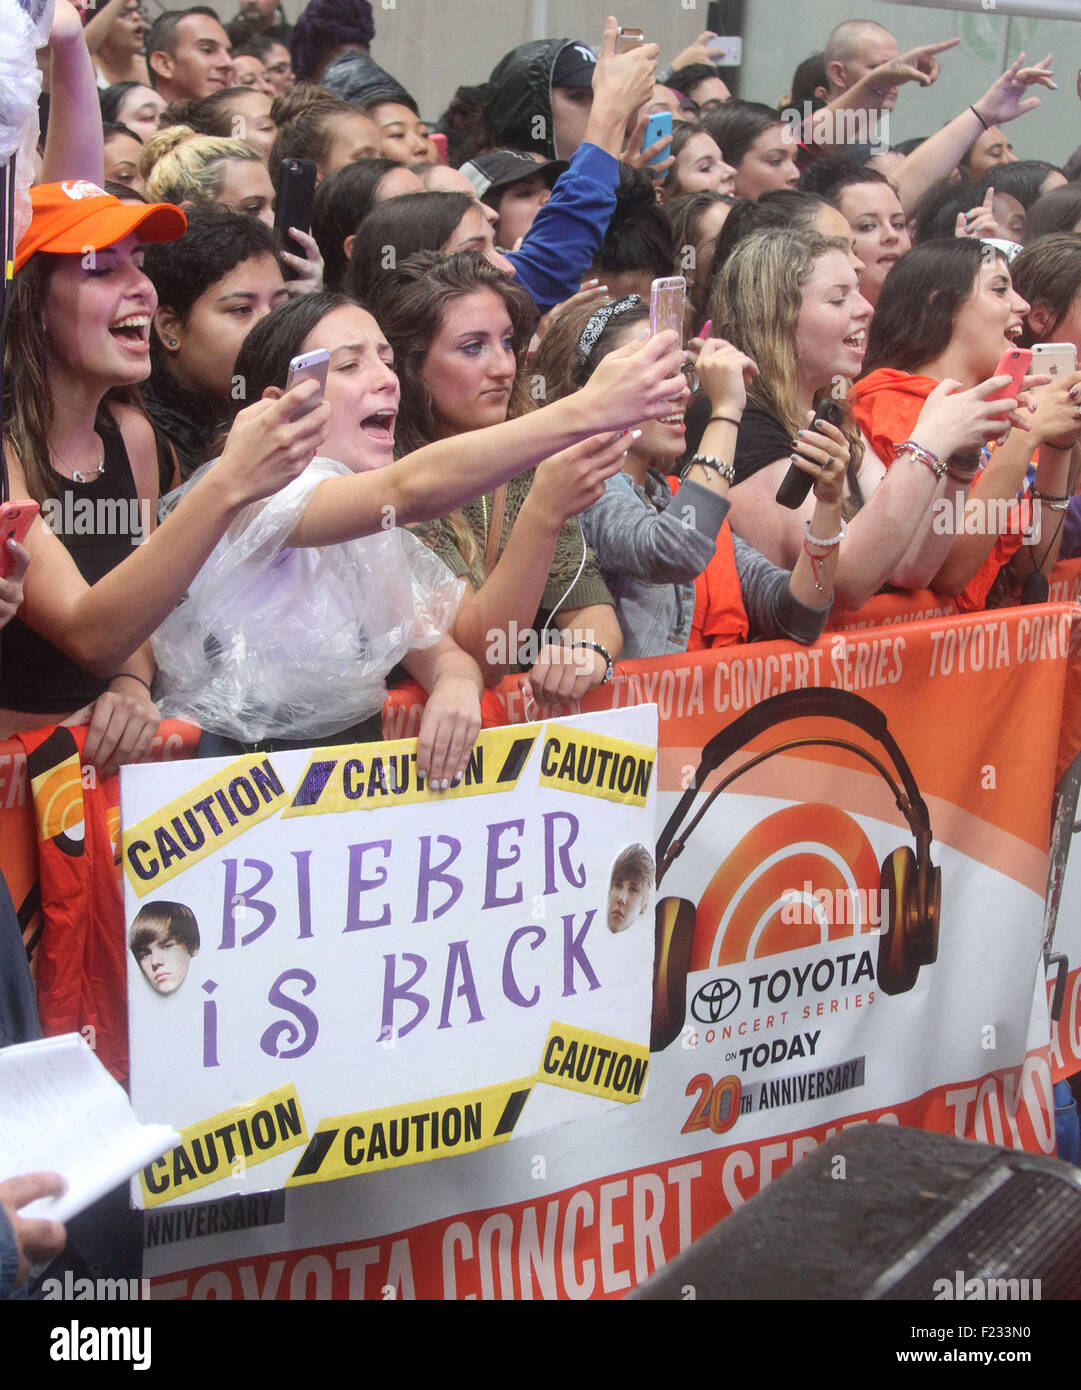 New York, New York, USA. 10th Sep, 2015. Fans attends JUSTIN BIEBER concert on the 'Today' show where it - Stock Image